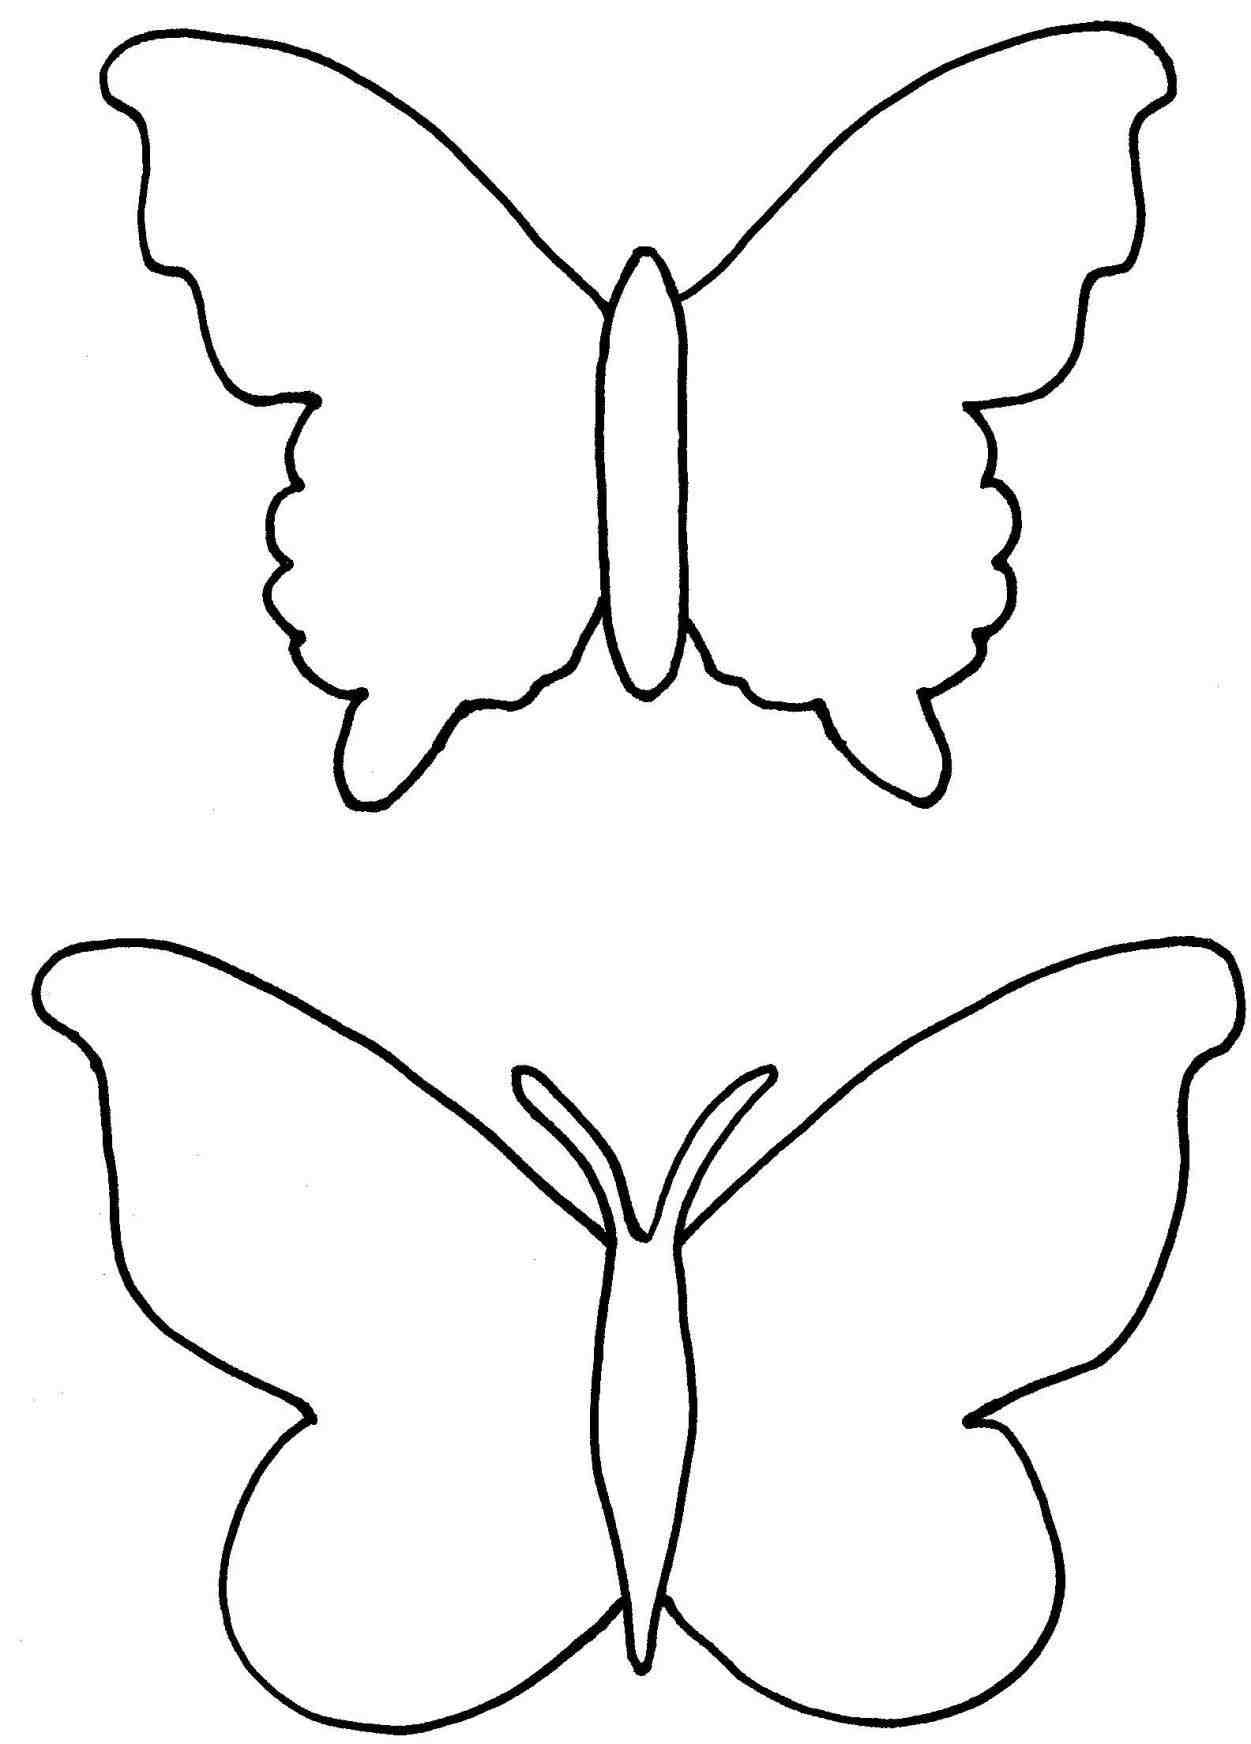 Butterfly Drawing Simple at GetDrawings.com | Free for personal use ...